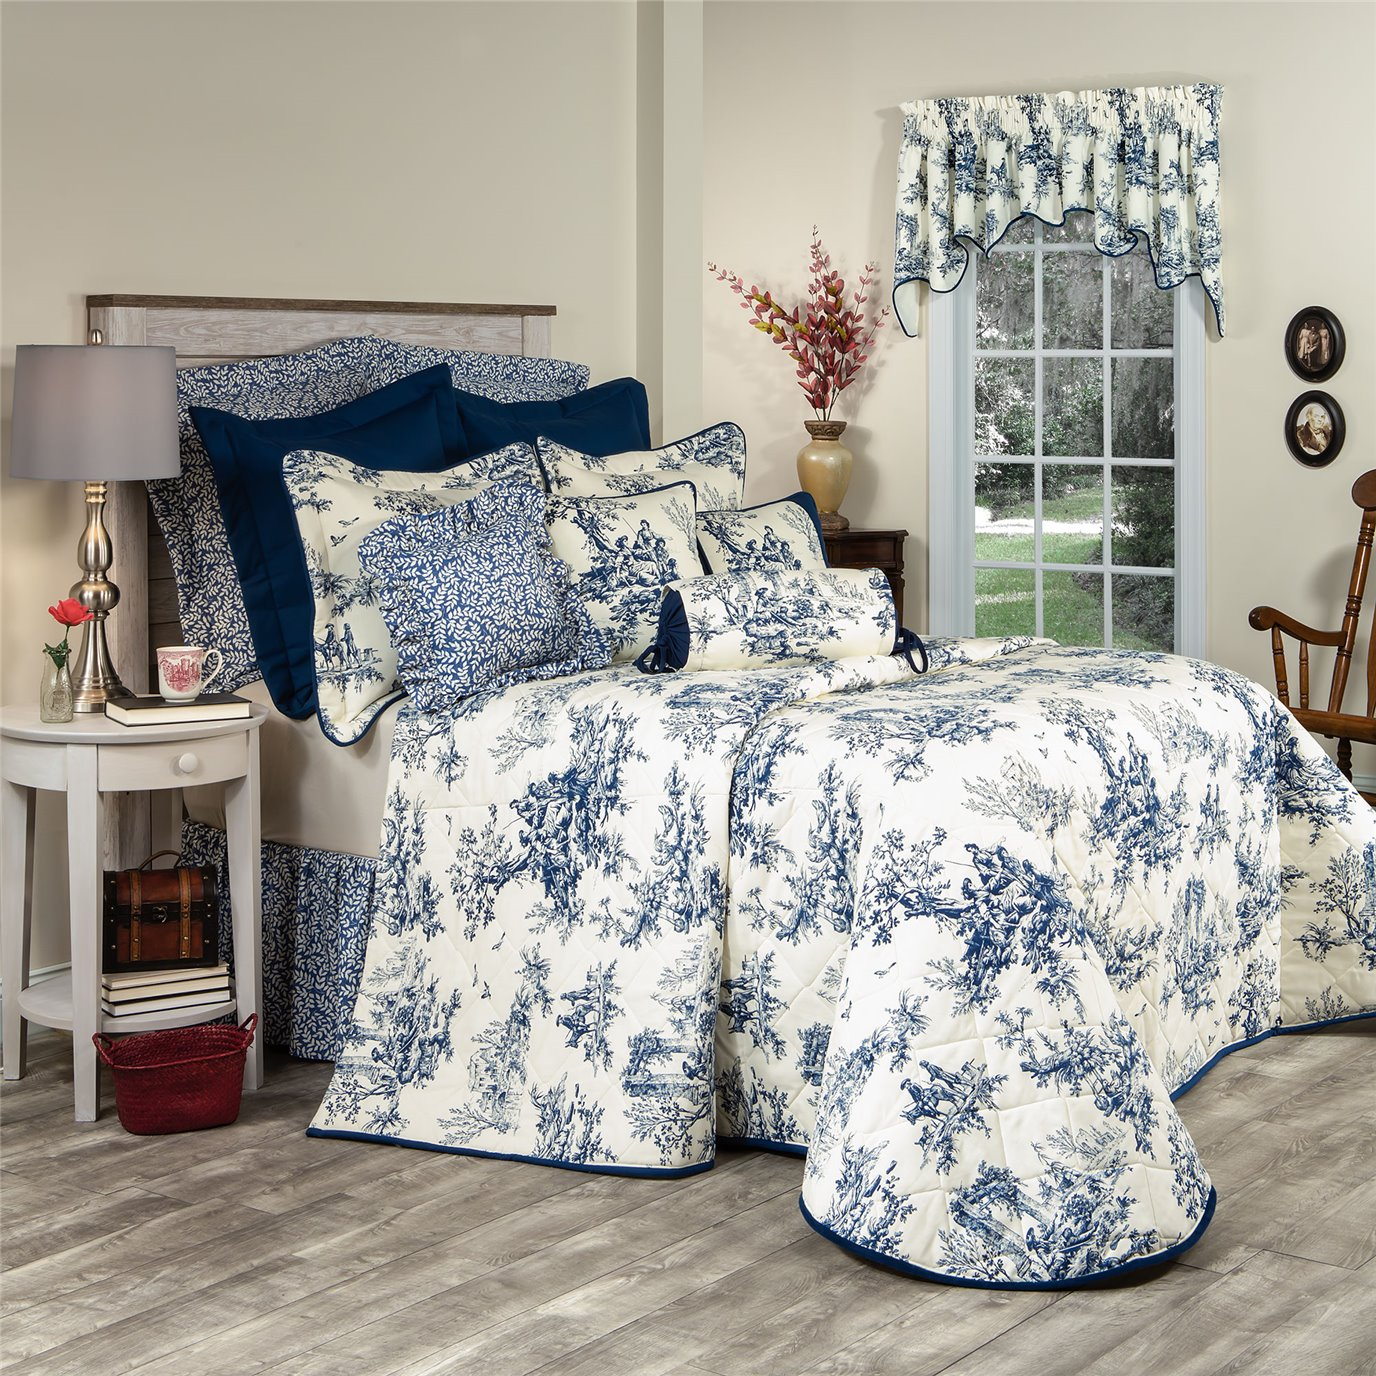 Bouvier Blue California King Bedspread By Thomasville Home Fashions